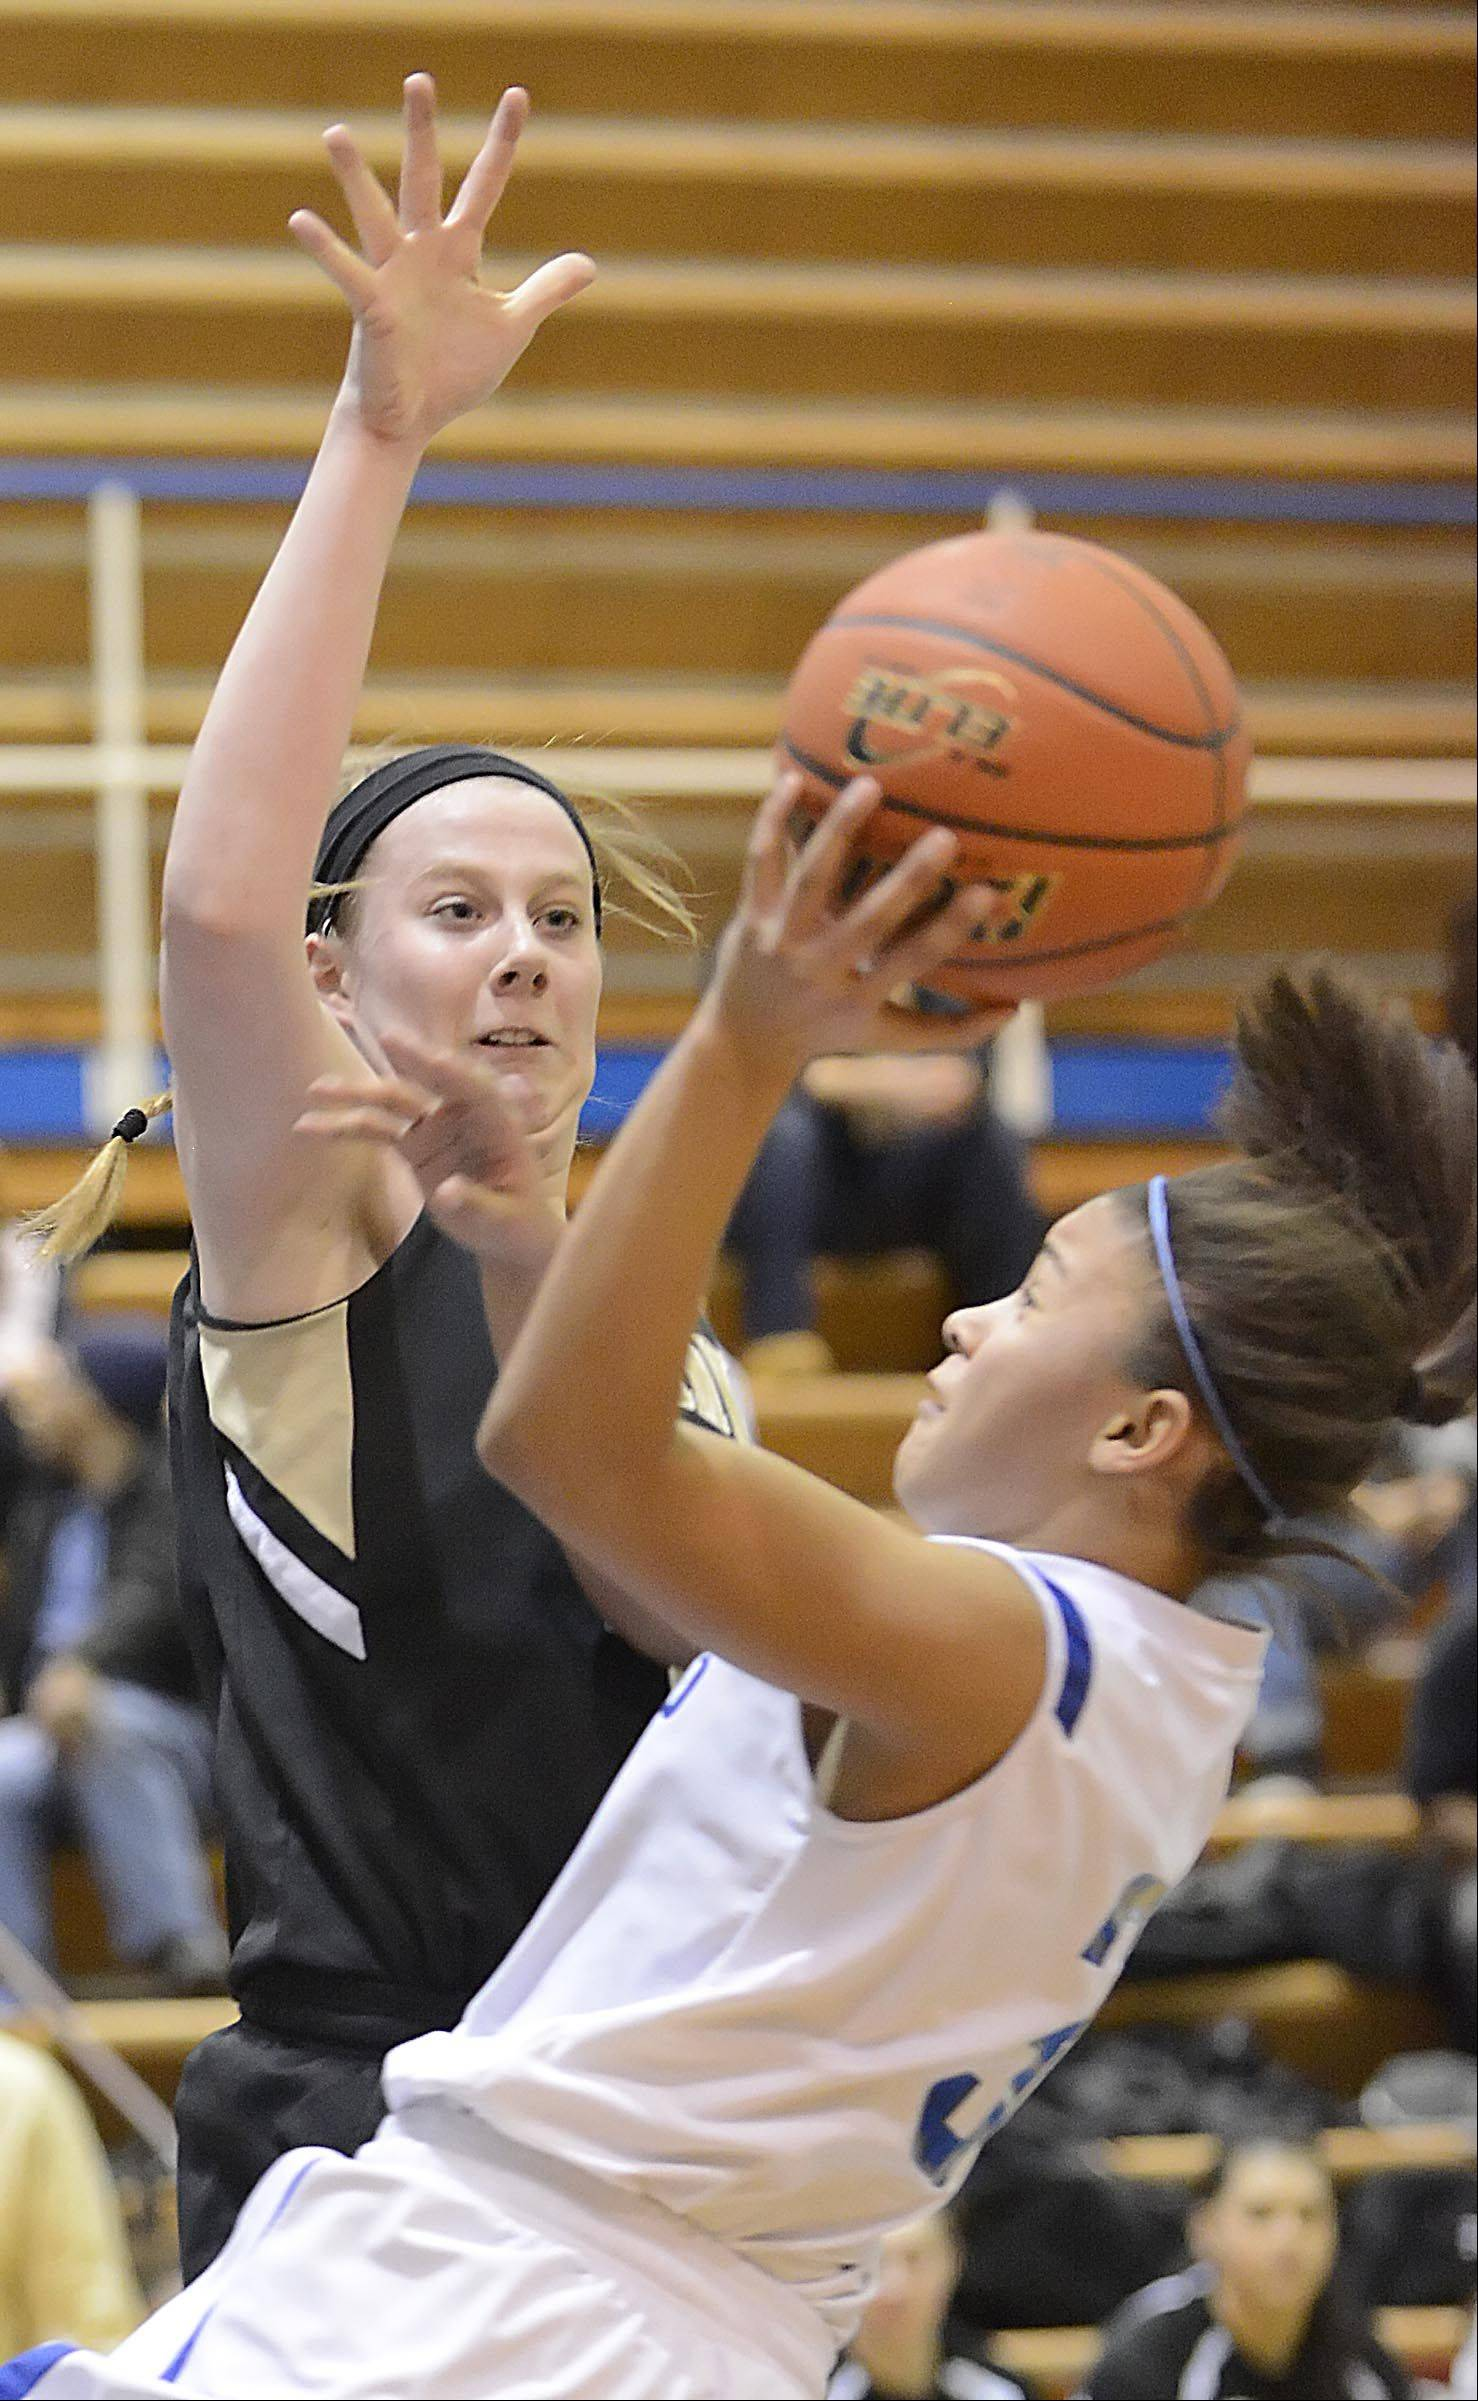 Streamwood's Hannah McGlone goes up to block a shot by Larkin's Marlee Kyles Thursday in Elgin.